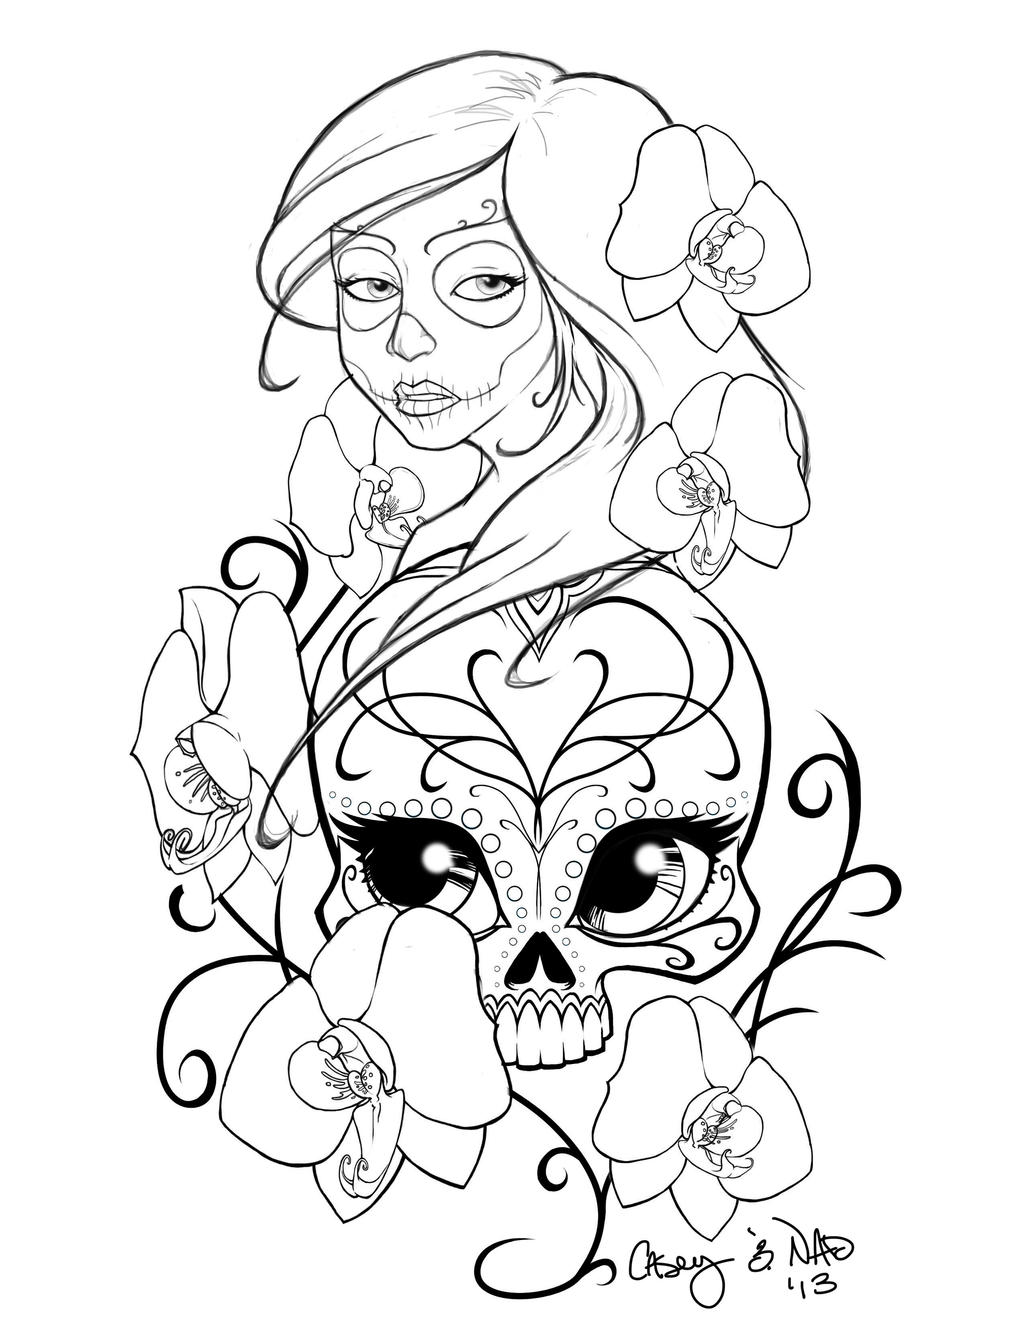 Sugar skull sleeve tattoo design by kcspaghetti on deviantart for Plenty of fish kc